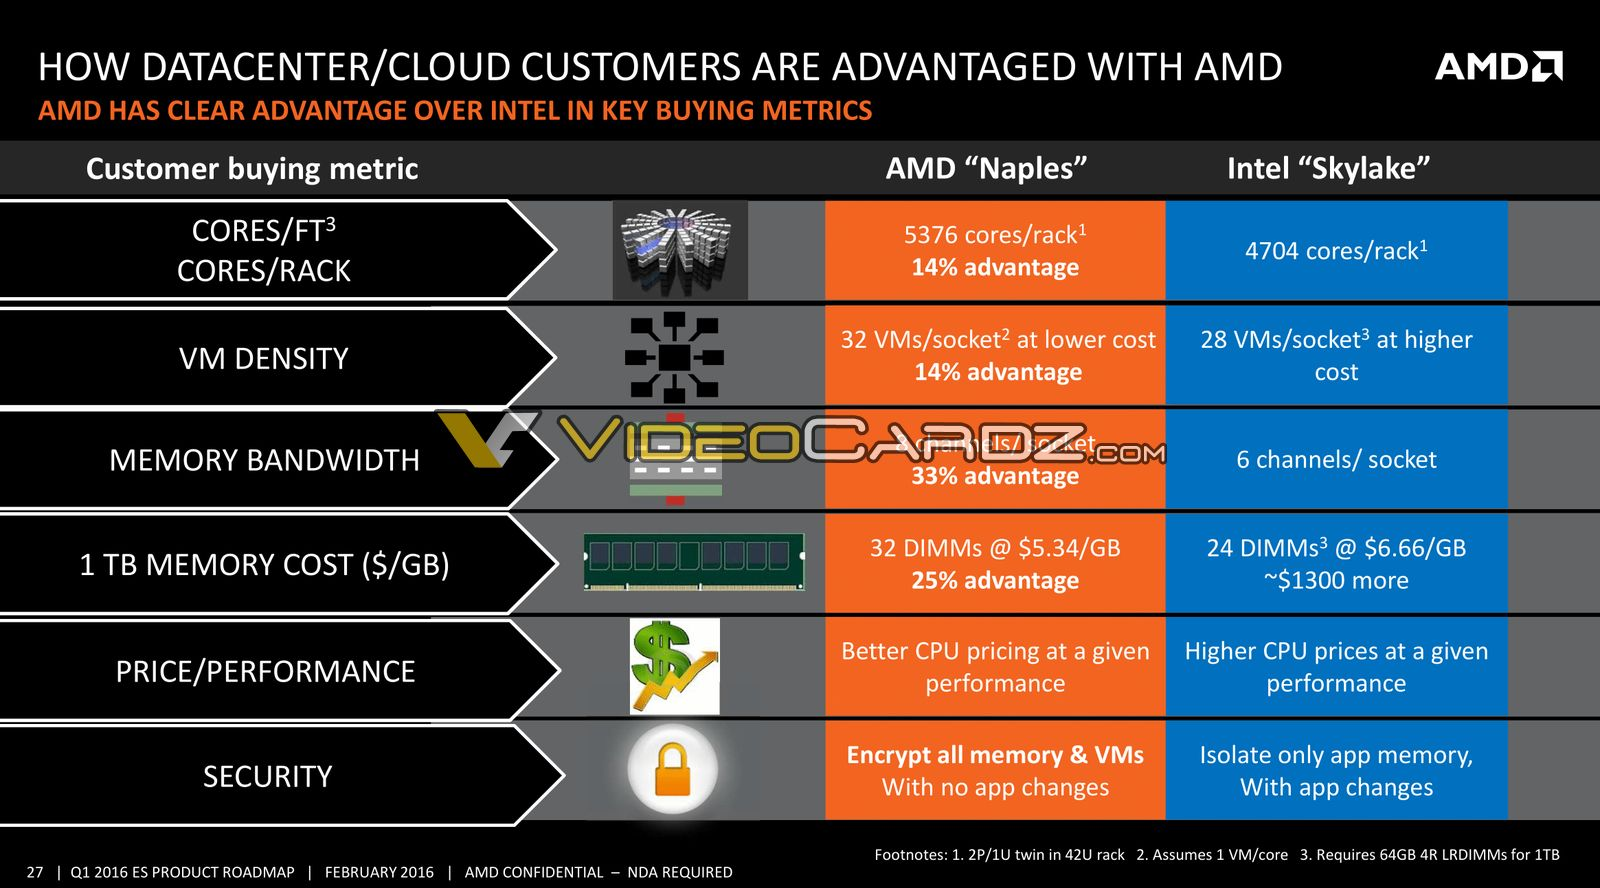 competitive strategies of intel amd Details of hundreds of intel competitors see intel top competitors and learn about the intel competitive landscape see all intel competitors intel competitors ibm looks to beat intel amd to 22nm node with chip breakthrough 21 documents.